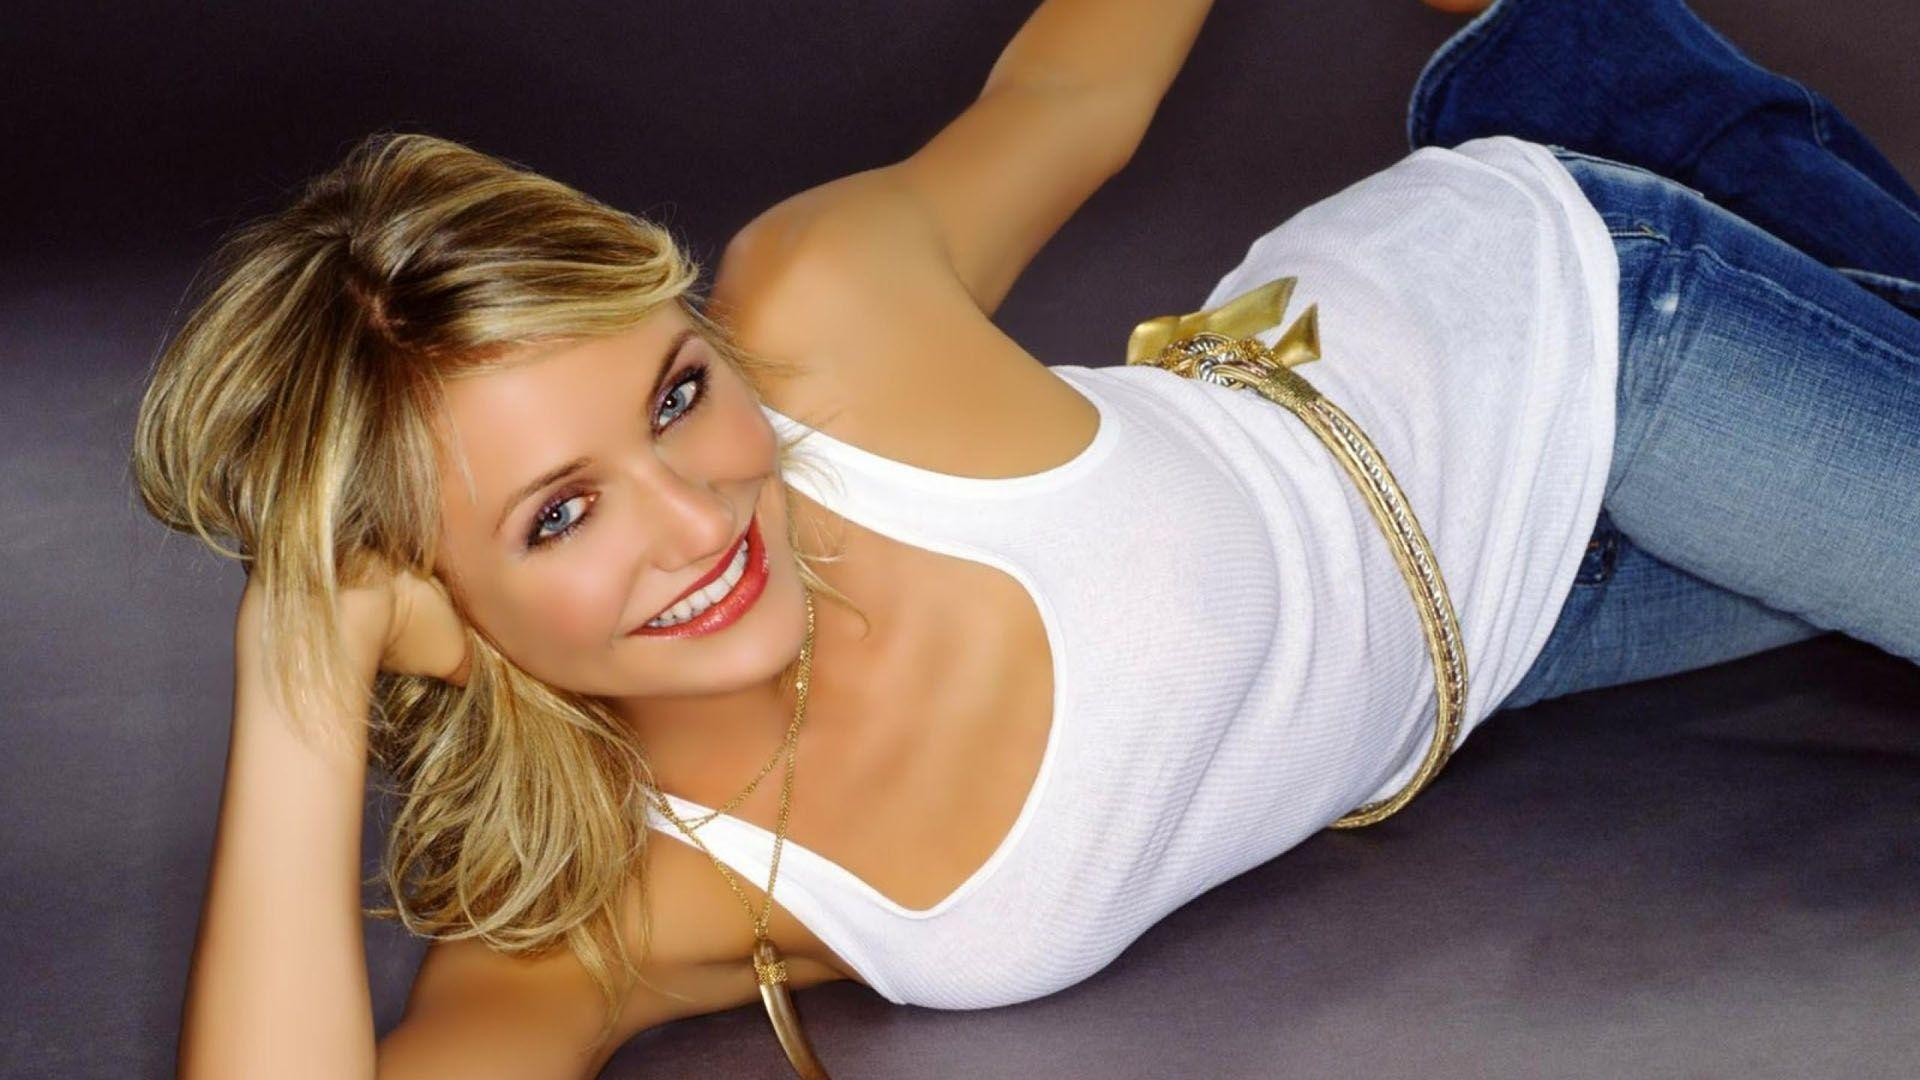 Cameron Diaz Wallpapers | Free Download HD Beautiful Actress Images